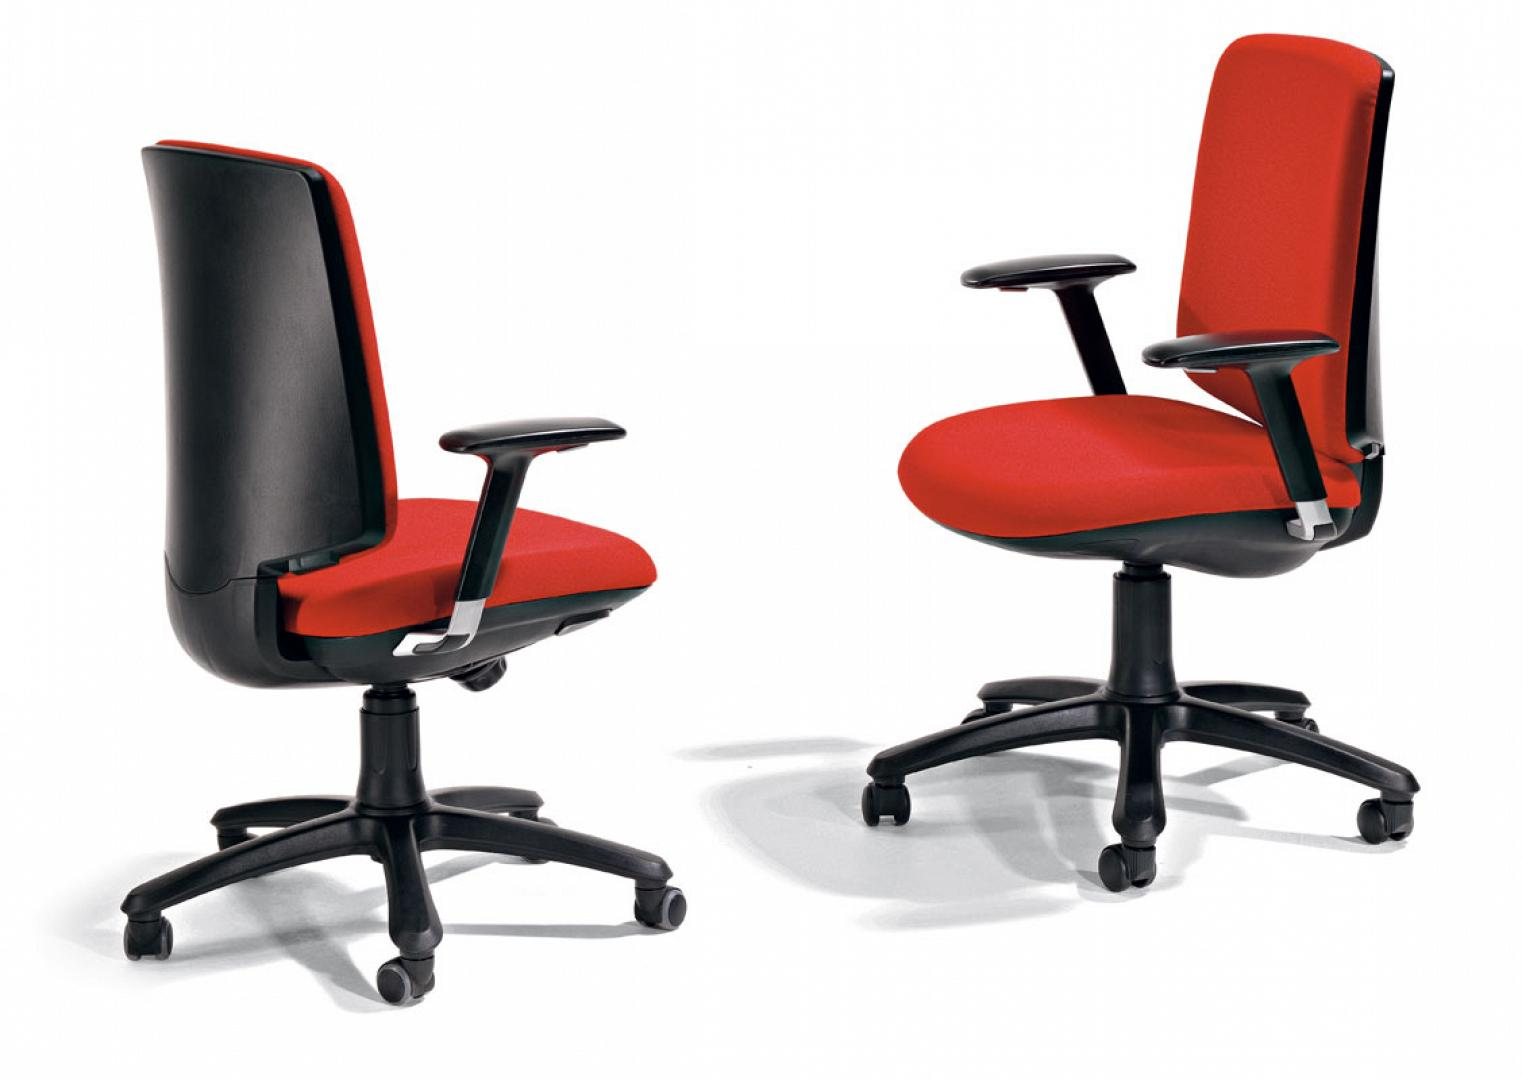 IDONIA 100, office chairs